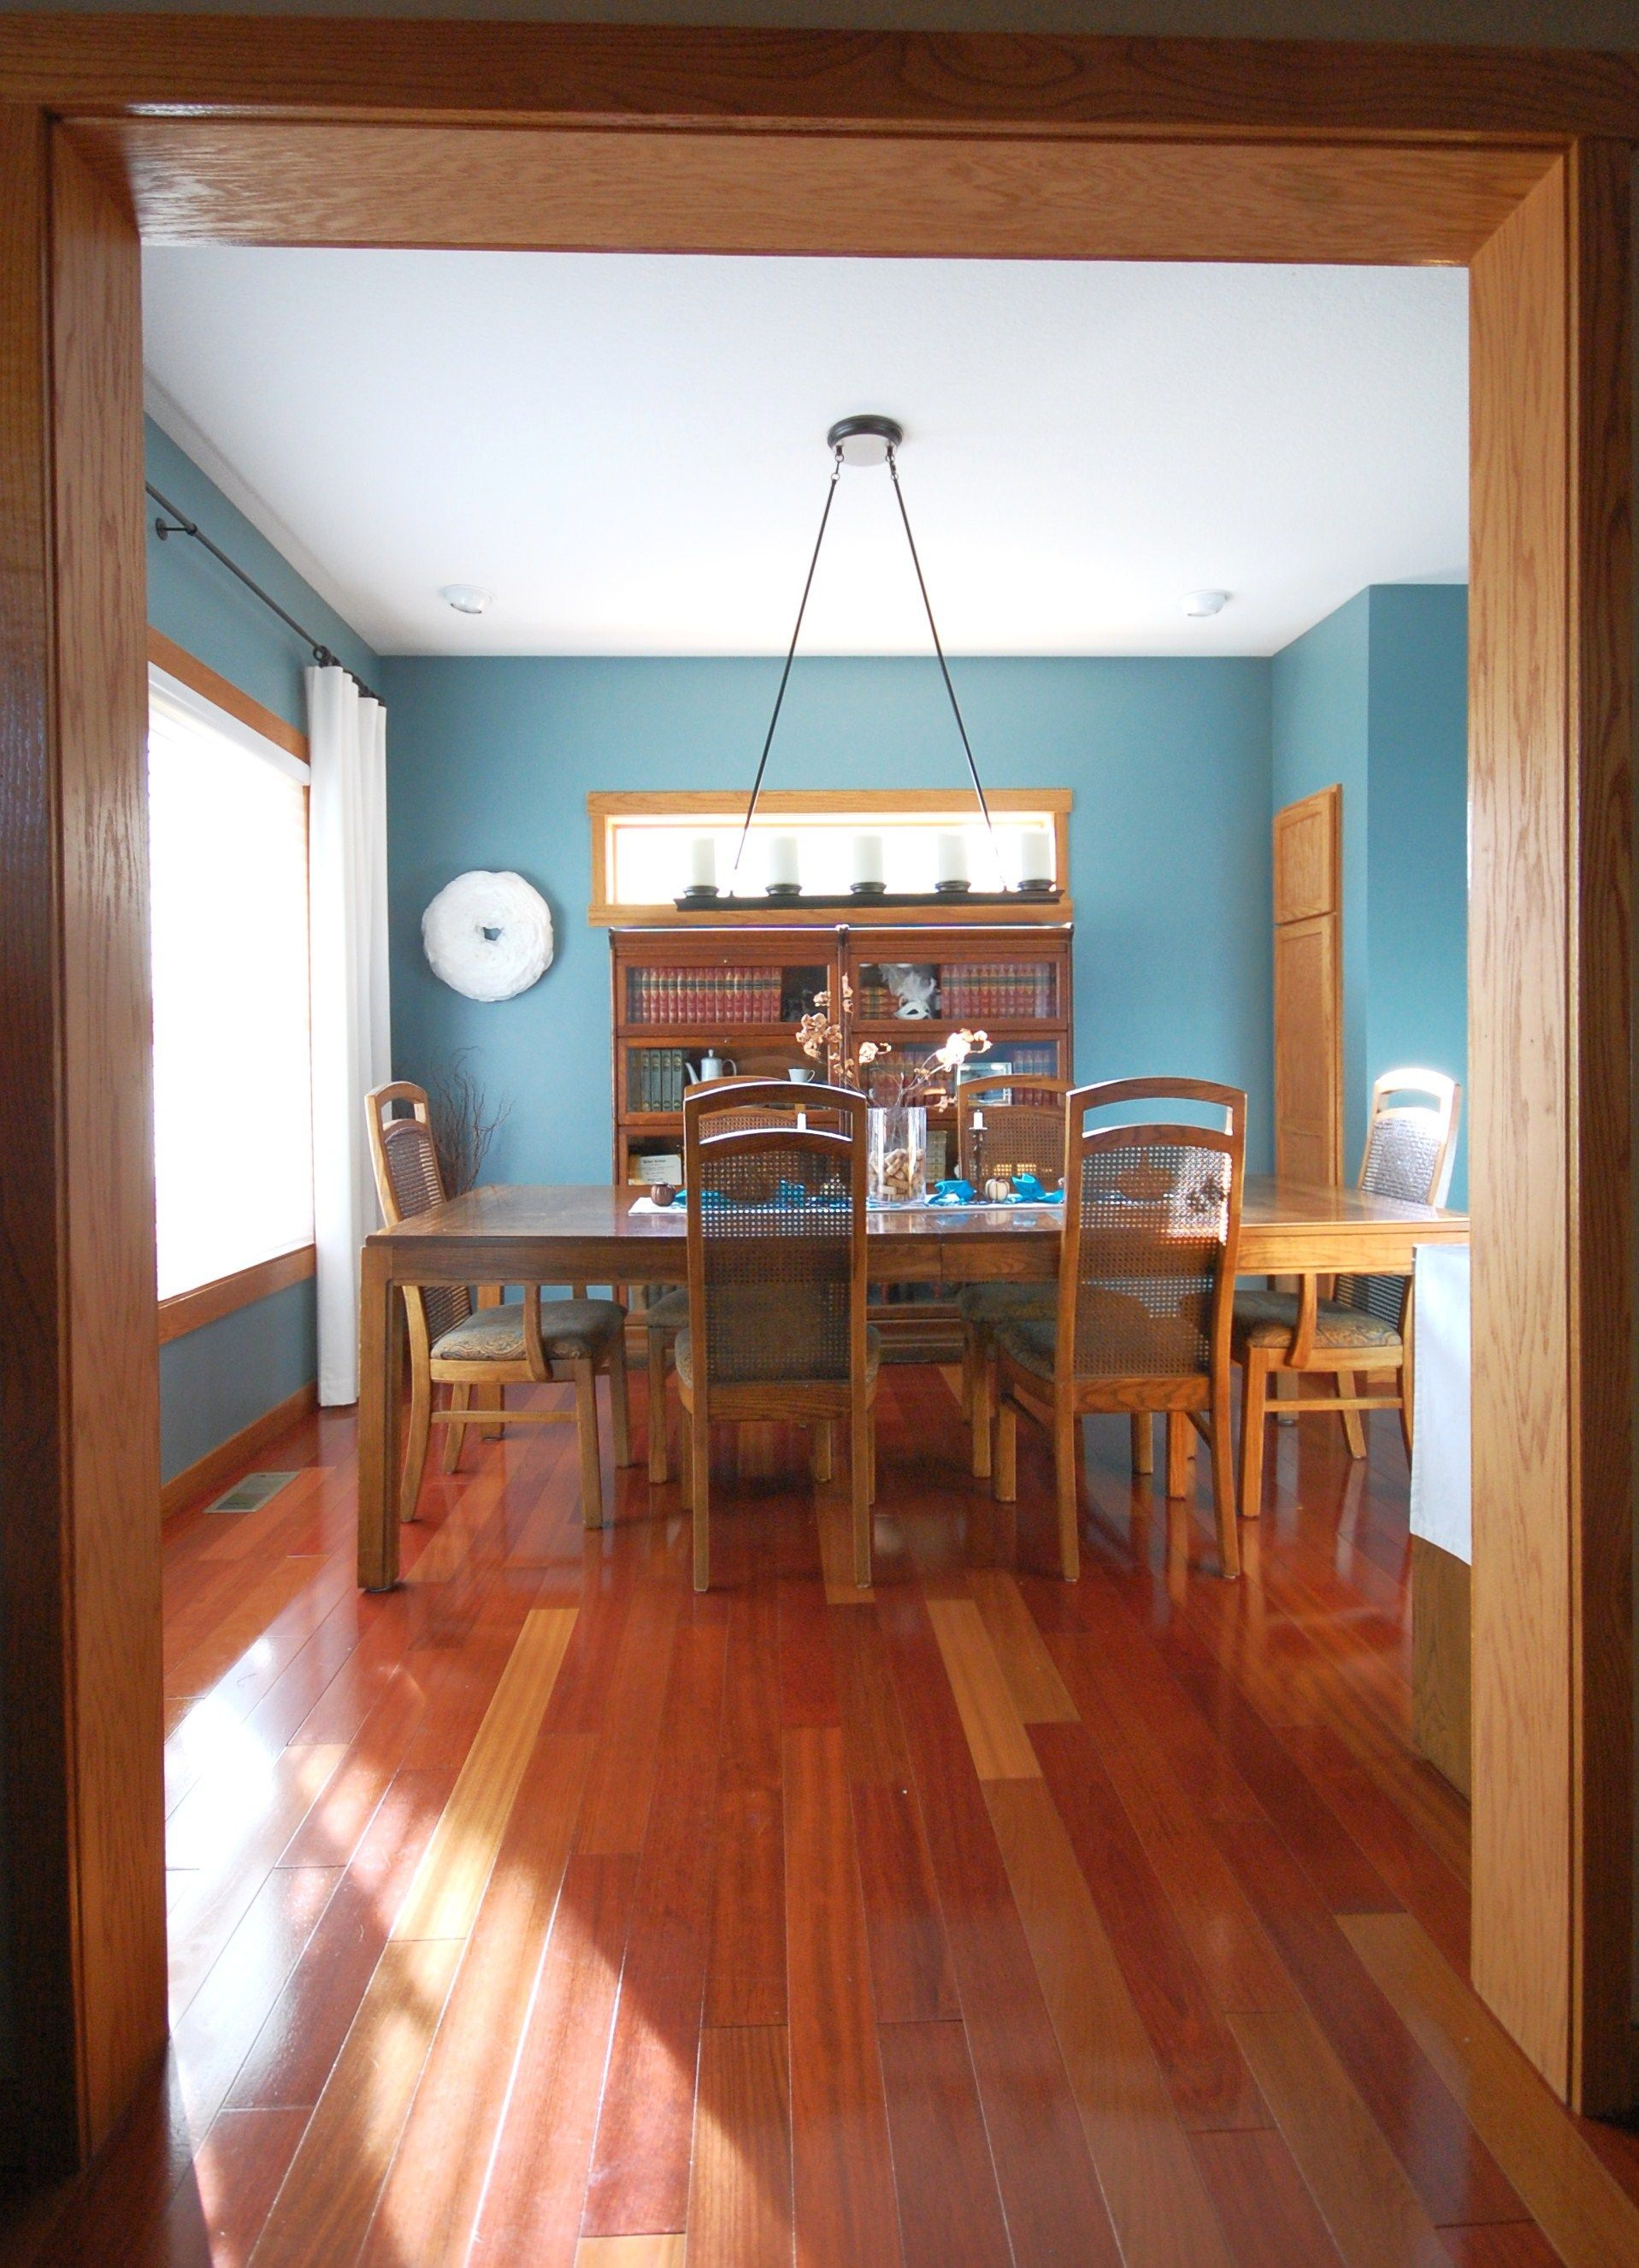 paint colors that go with oak trimMy Dining Room with Oak Trim paint color Sherwin Williams Moody